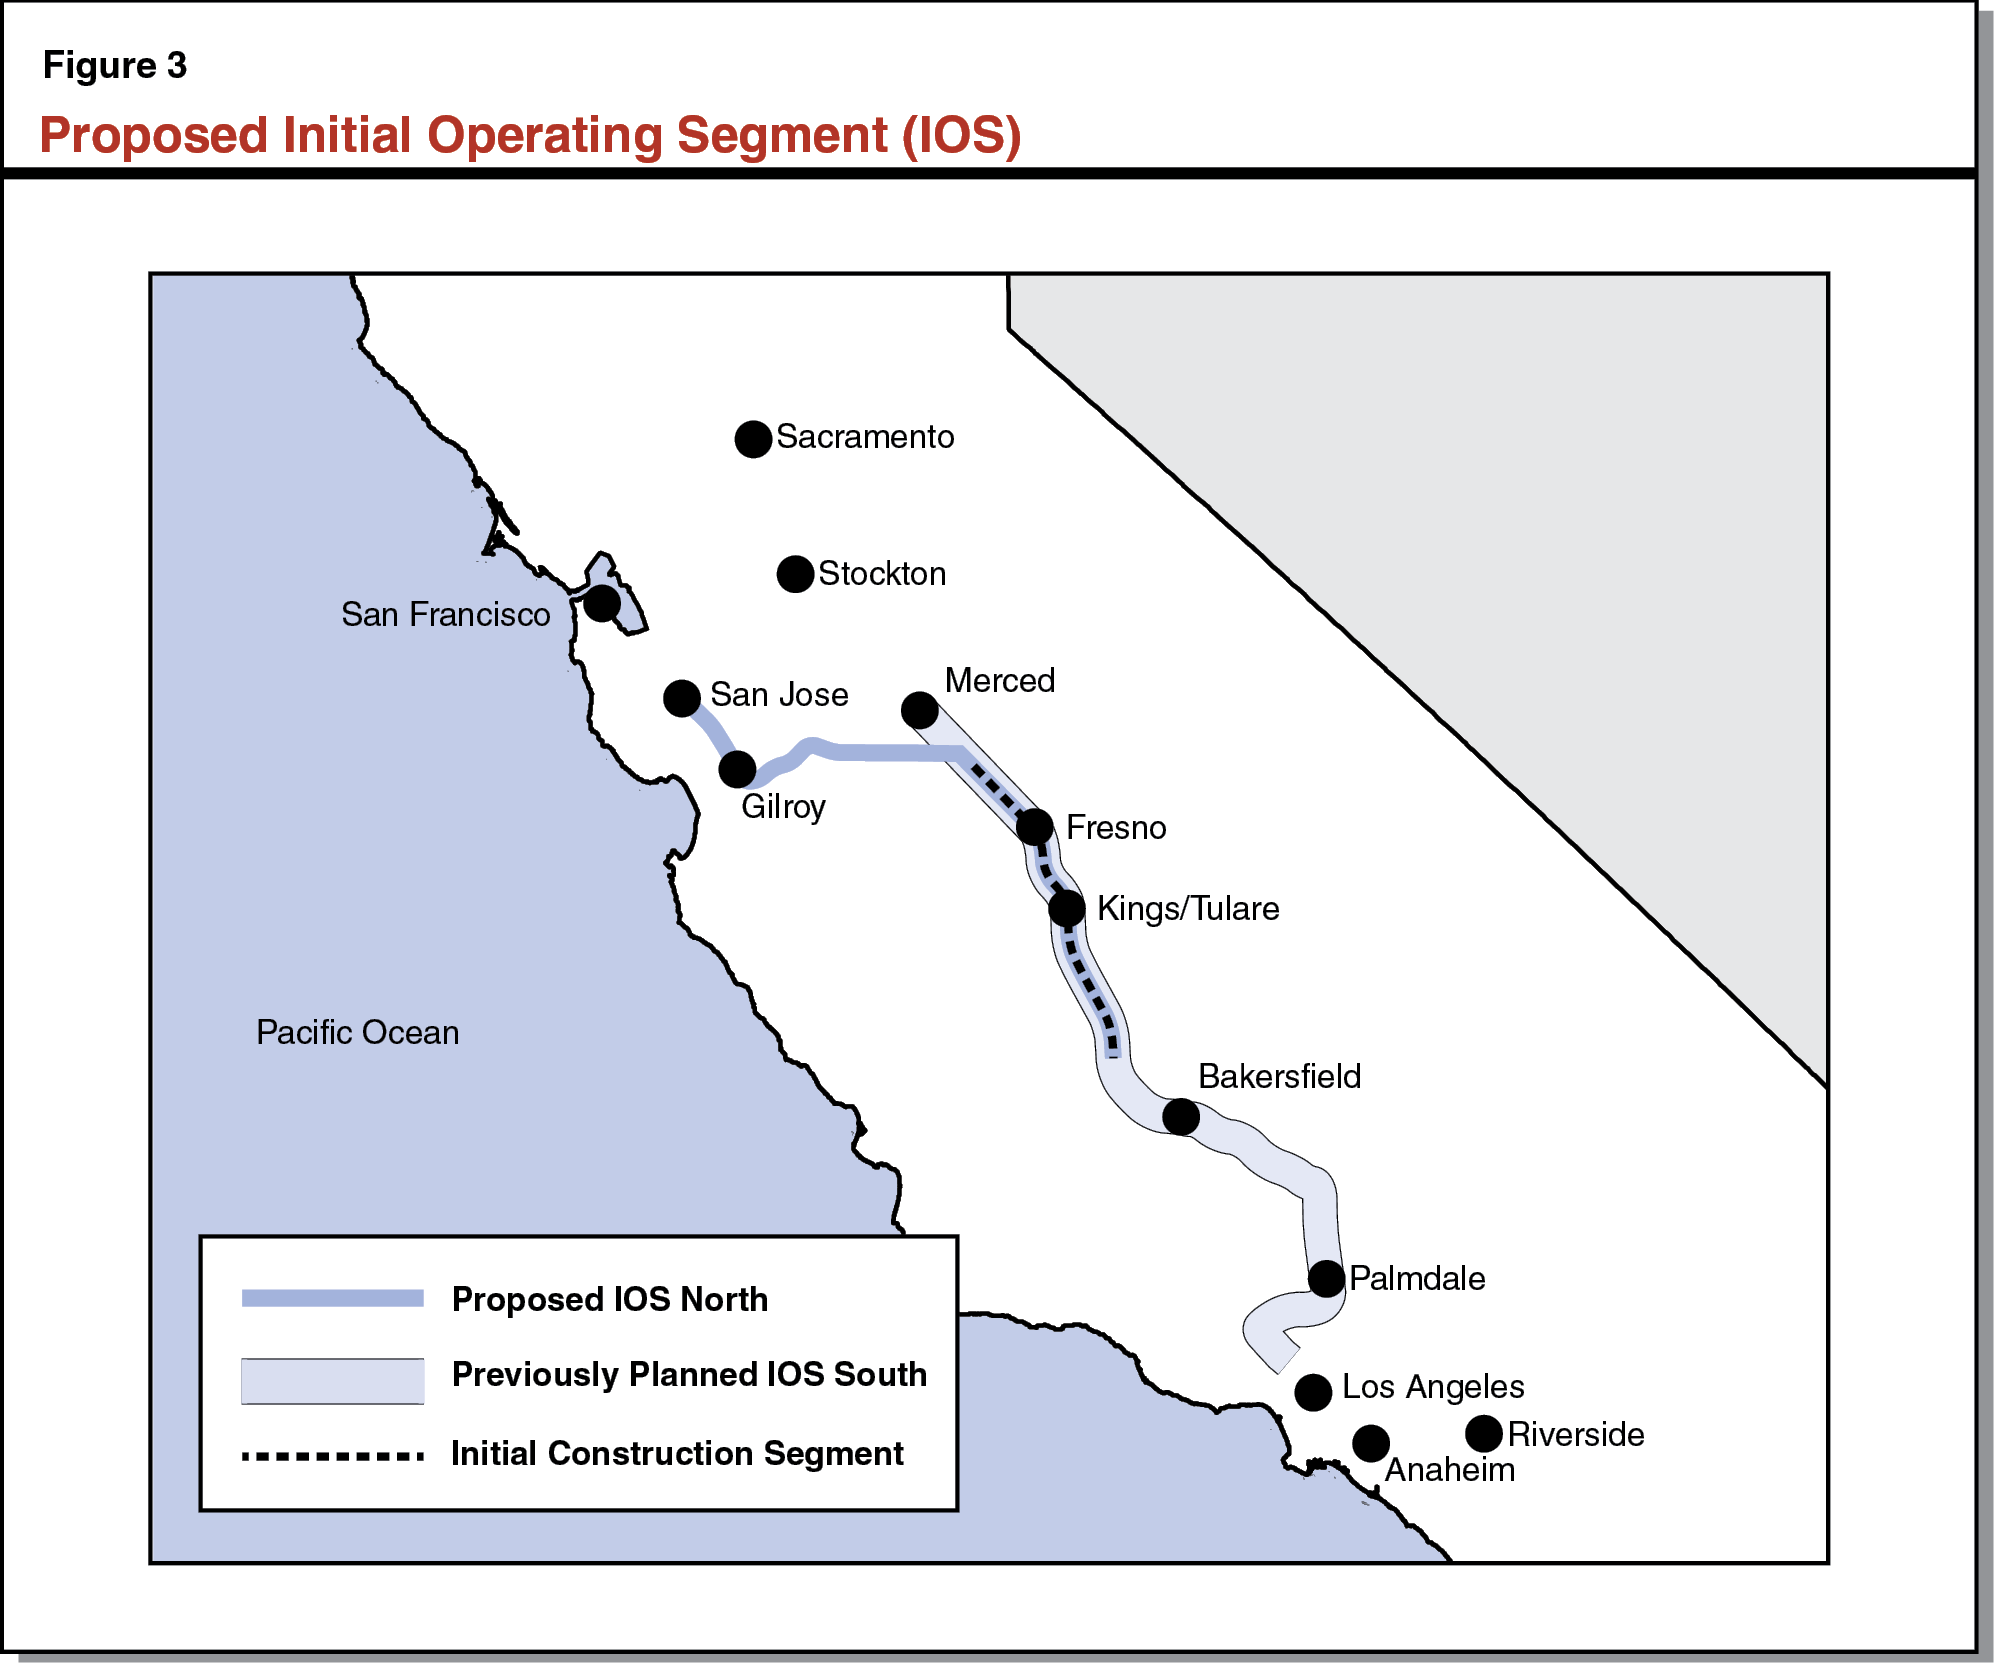 Figure 3 - Proposed Initial Operating Segment (IOS)